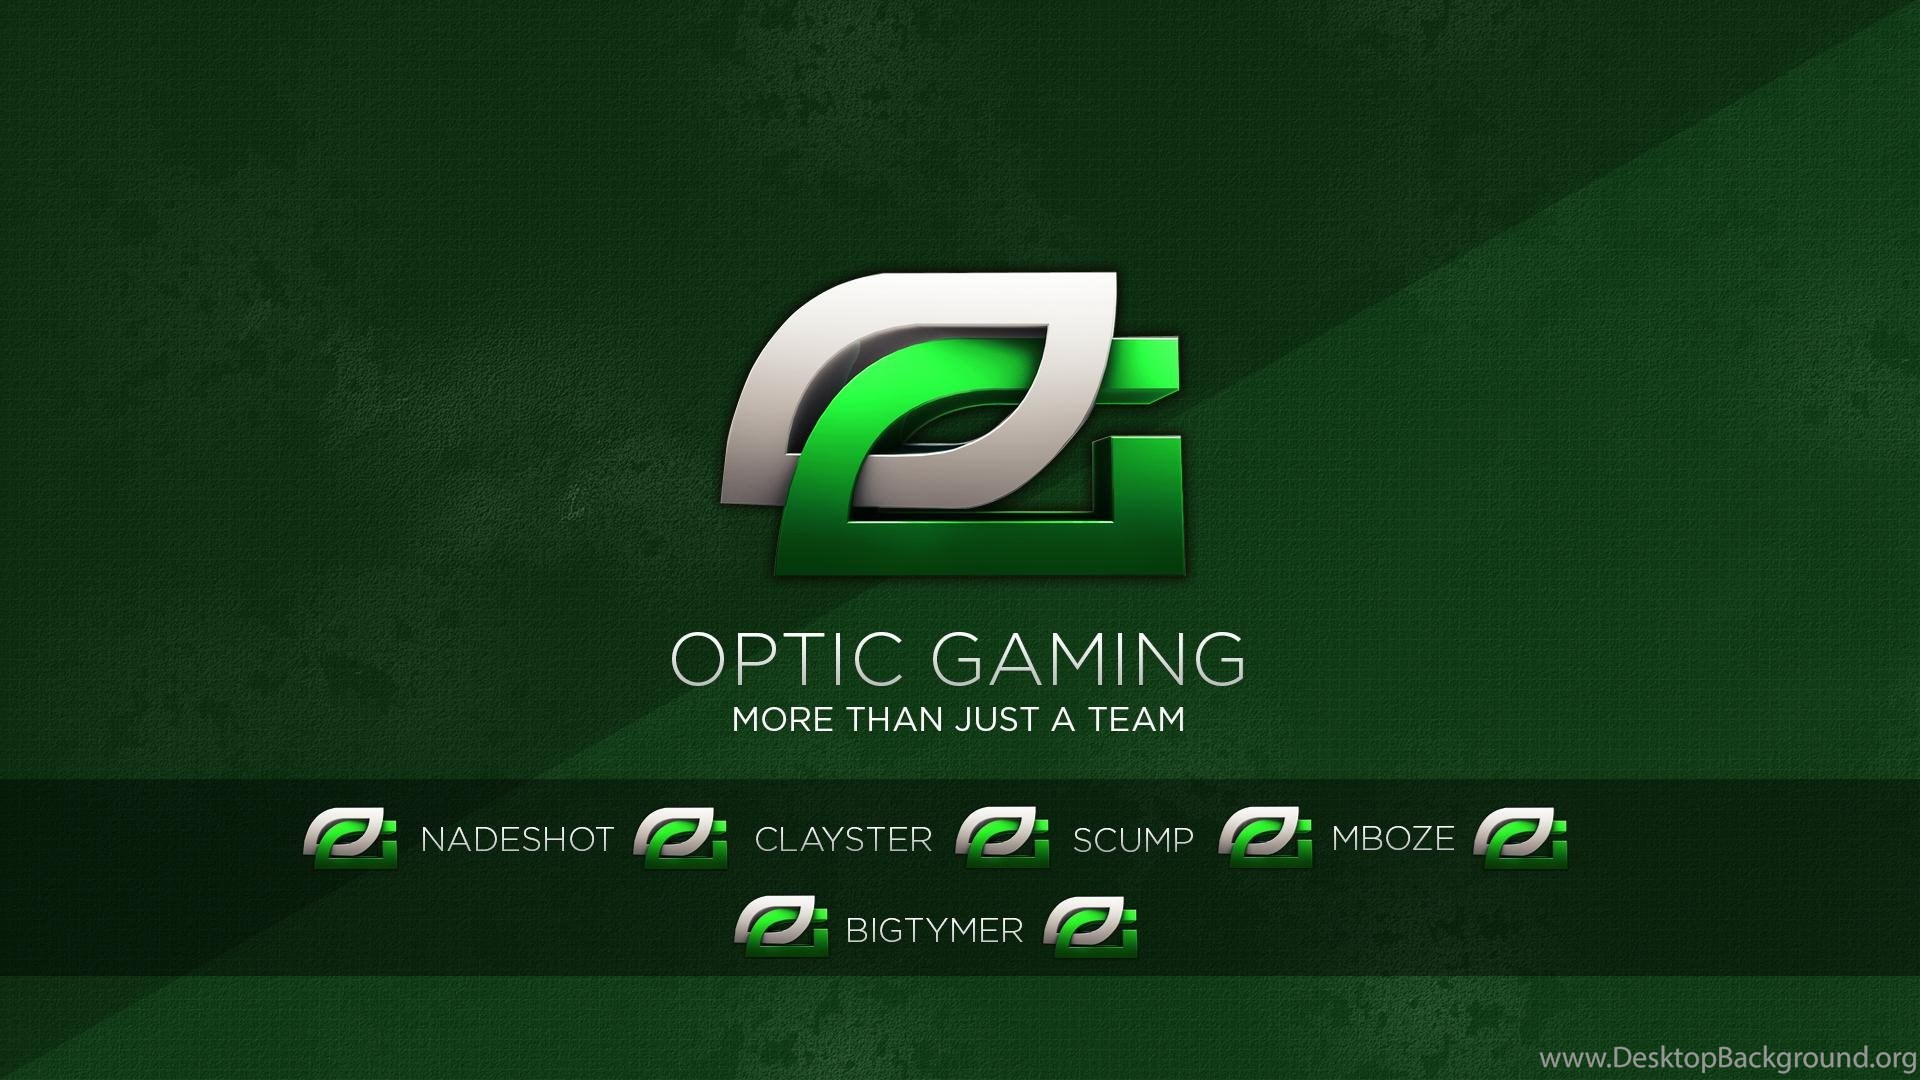 optic gaming wallpapers 2015 wallpapers cave desktop background